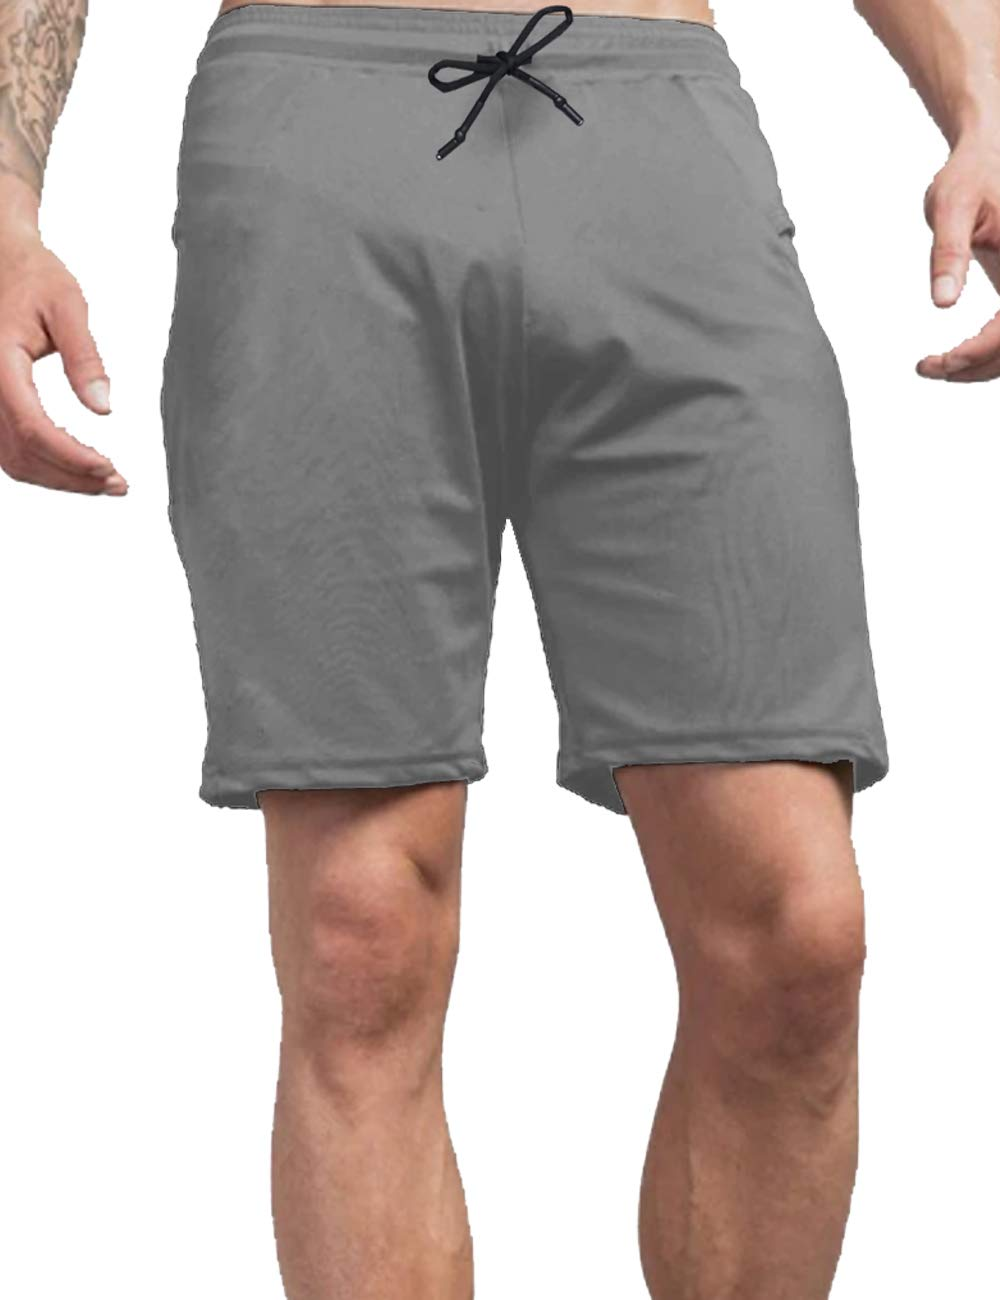 COOFANDY Men's Gym Workout Shorts Athletic Bodybuilding Short Pants Running Fitted Training Jogger with Zipper Pockets